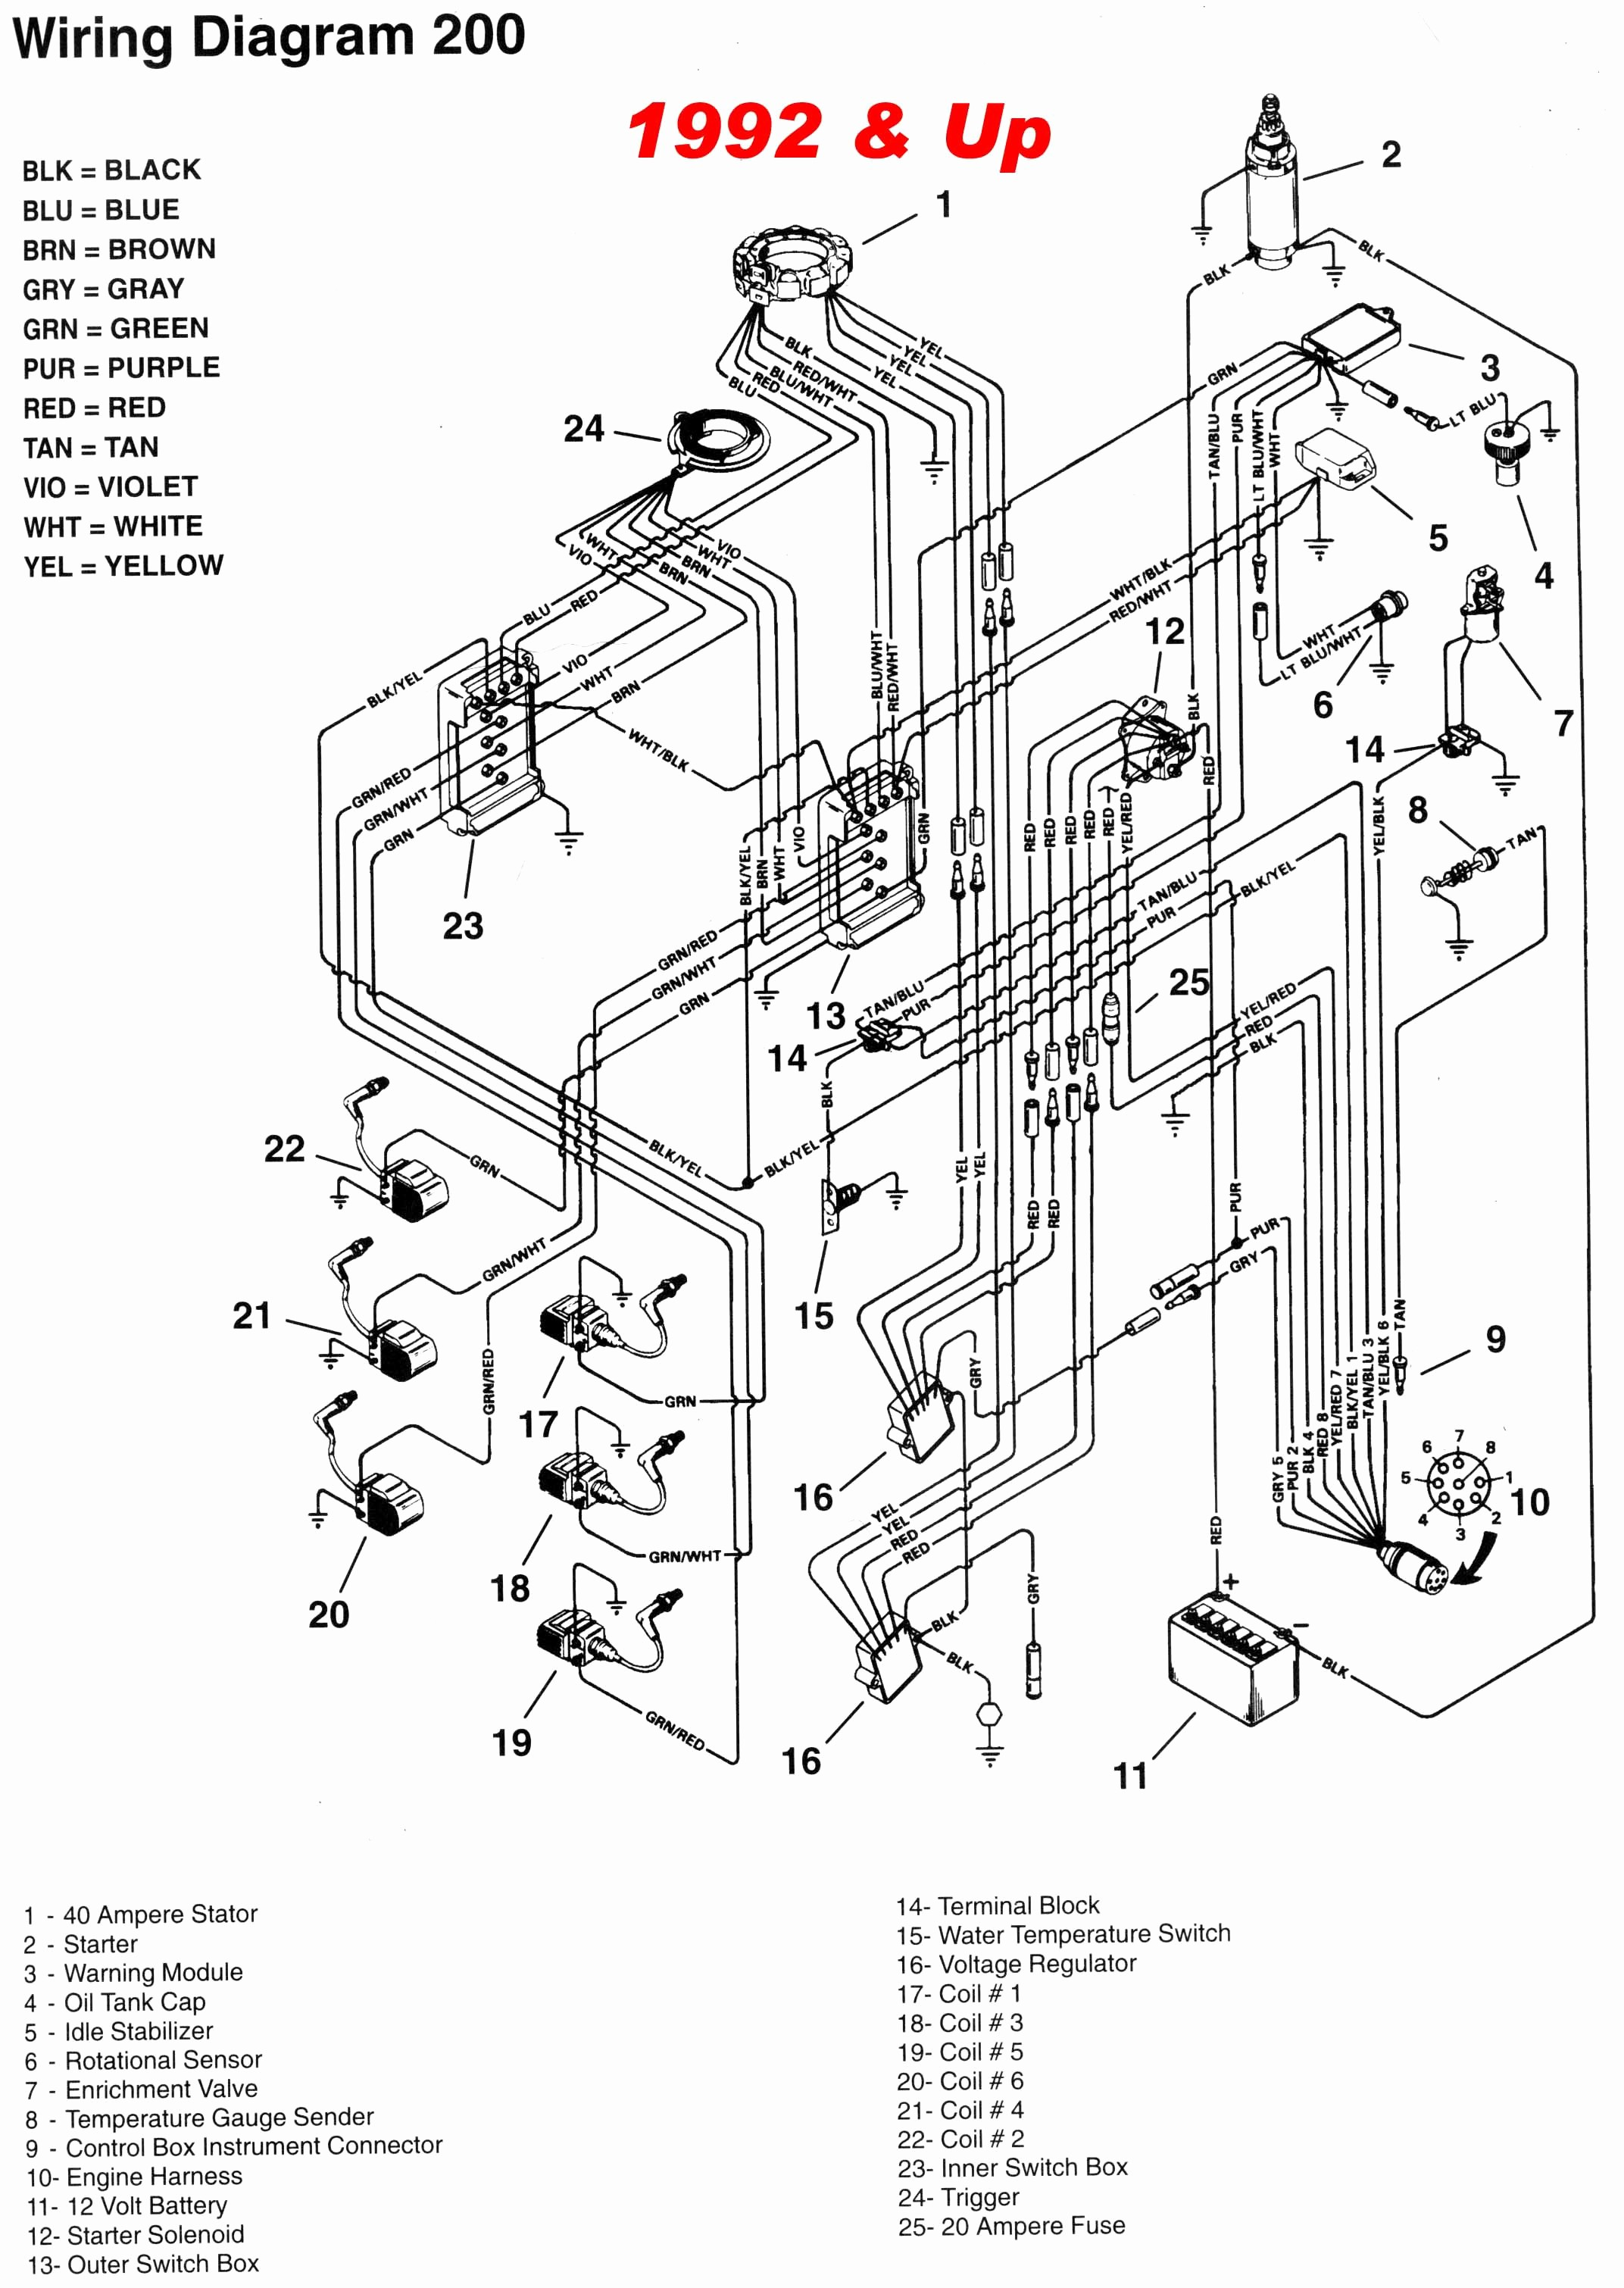 2000 New Beetle Coolant Diagram Wiring Schematic Trusted Vw Jetta Cooling Will Be A Thing U2022 Fuse Chart